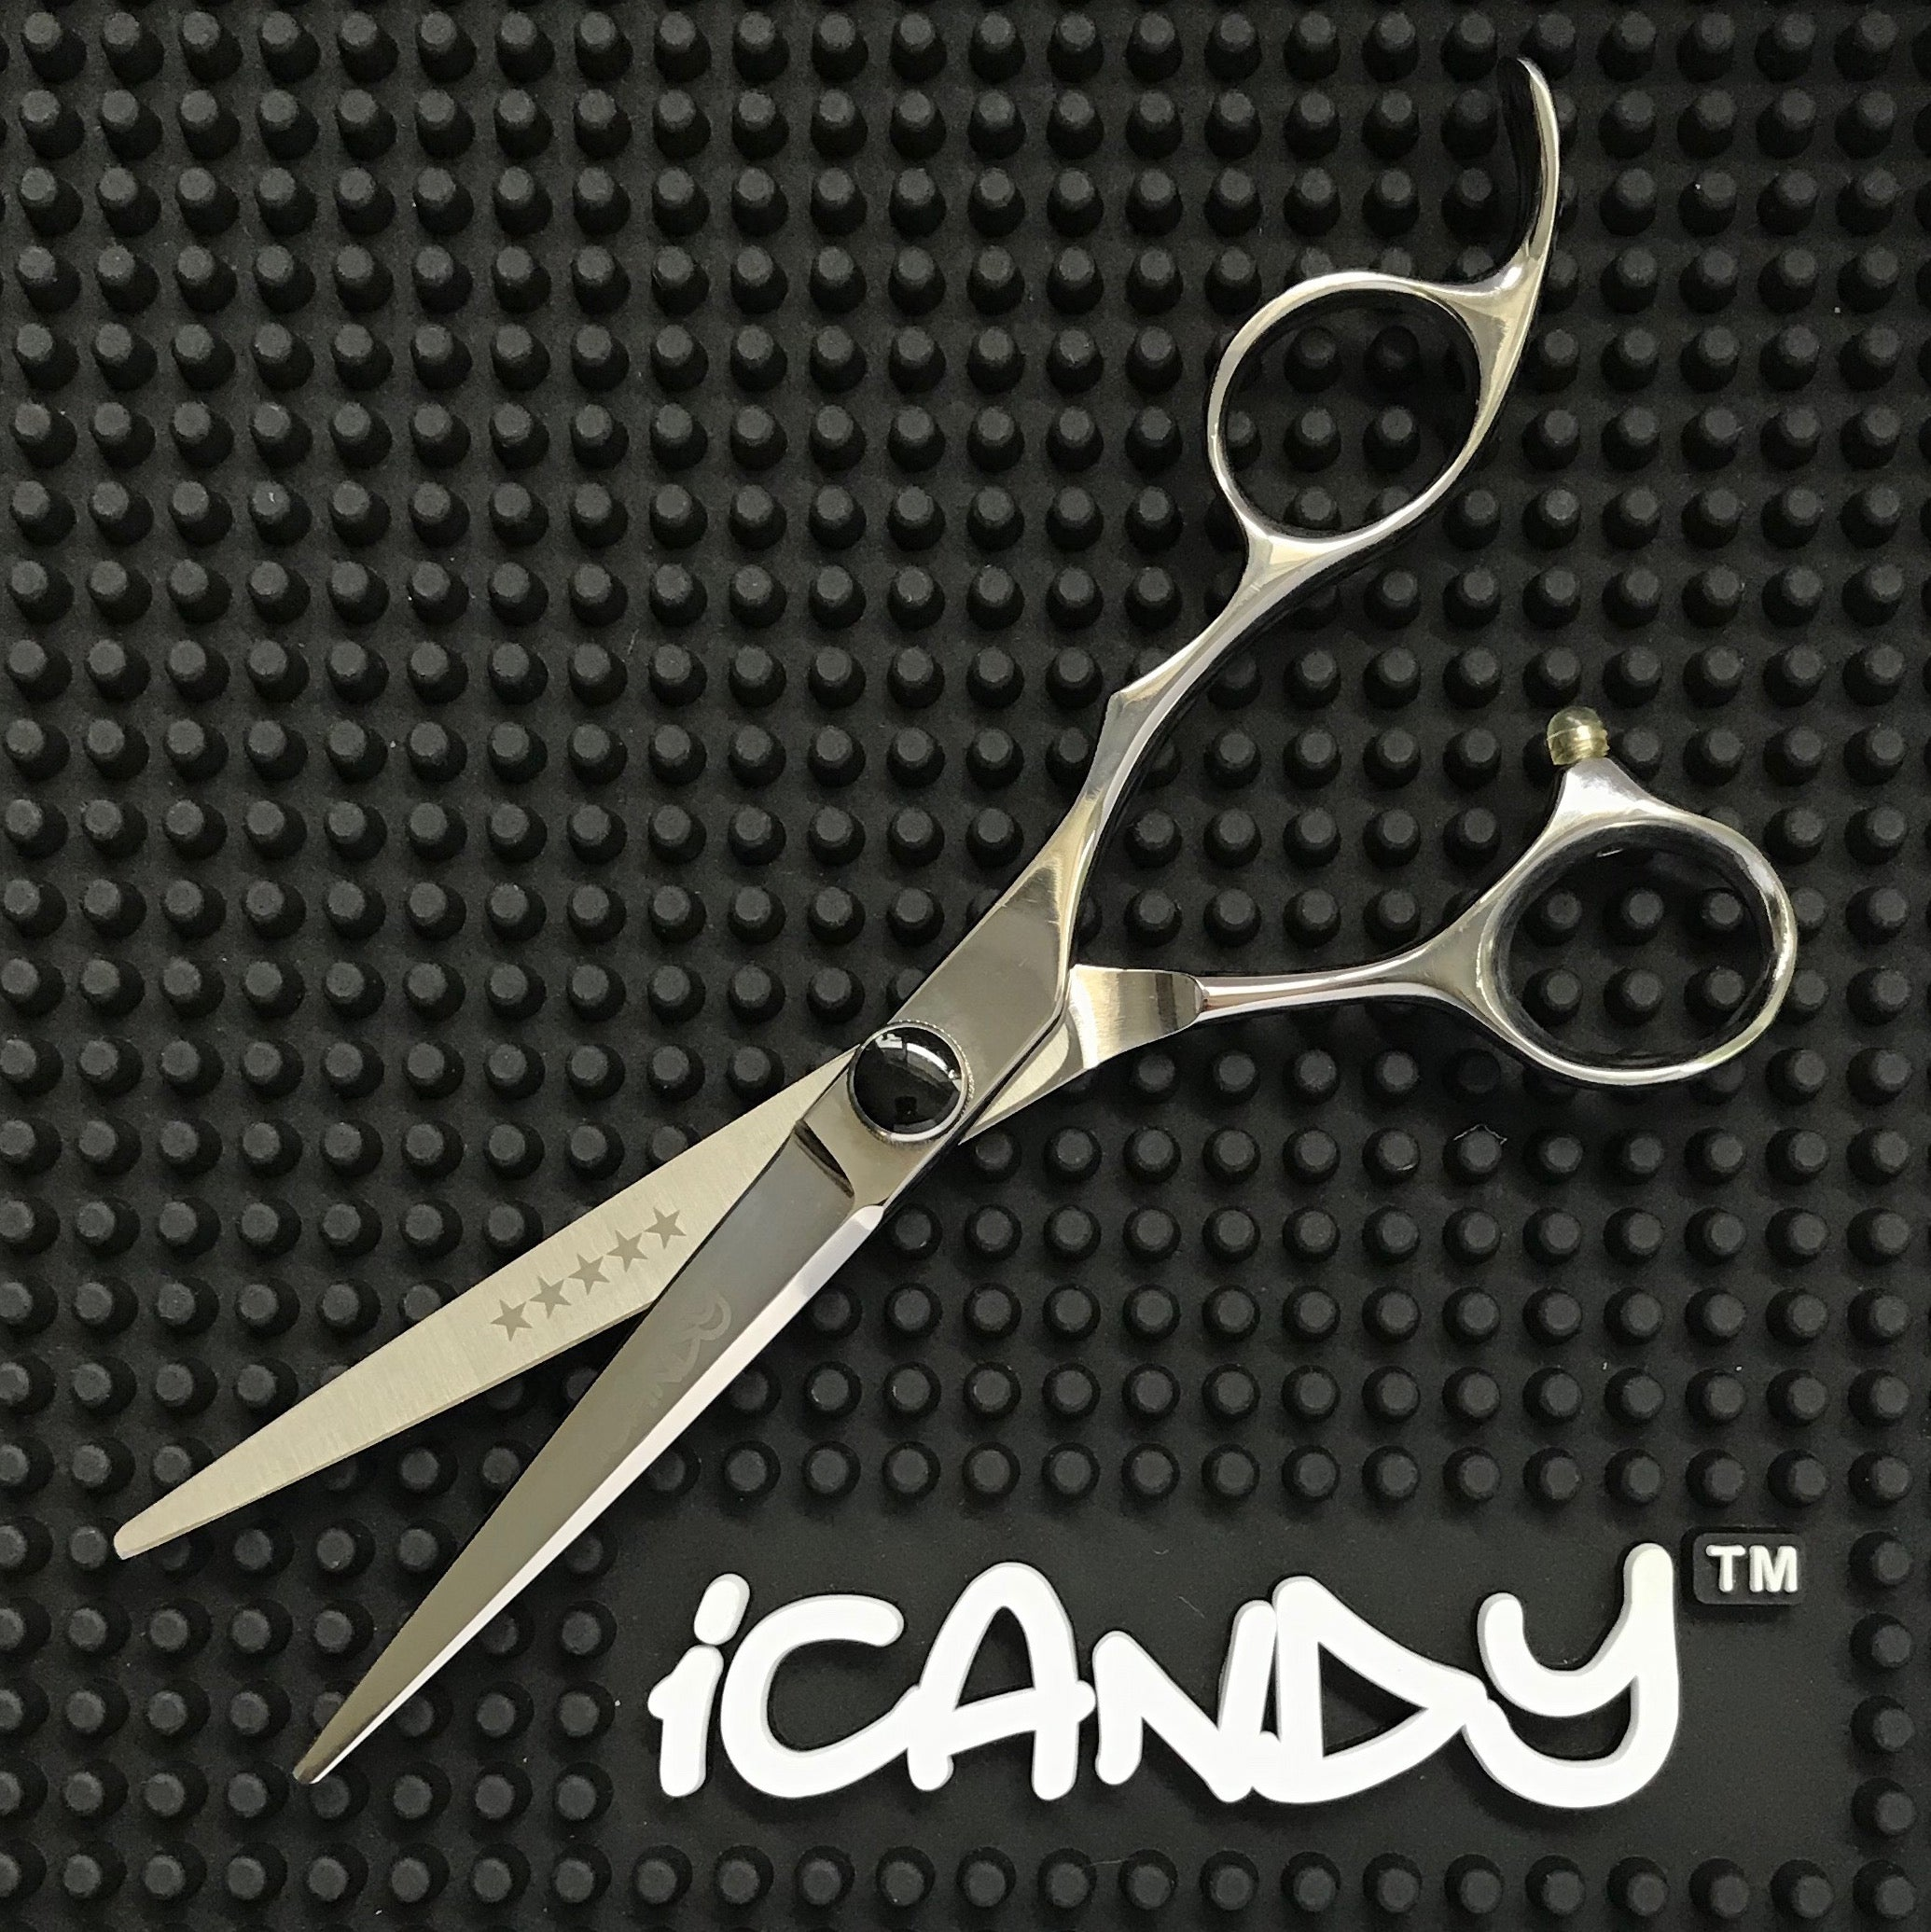 iCandy Elite Scissors  (6.0 inch) - iCandy Scissors